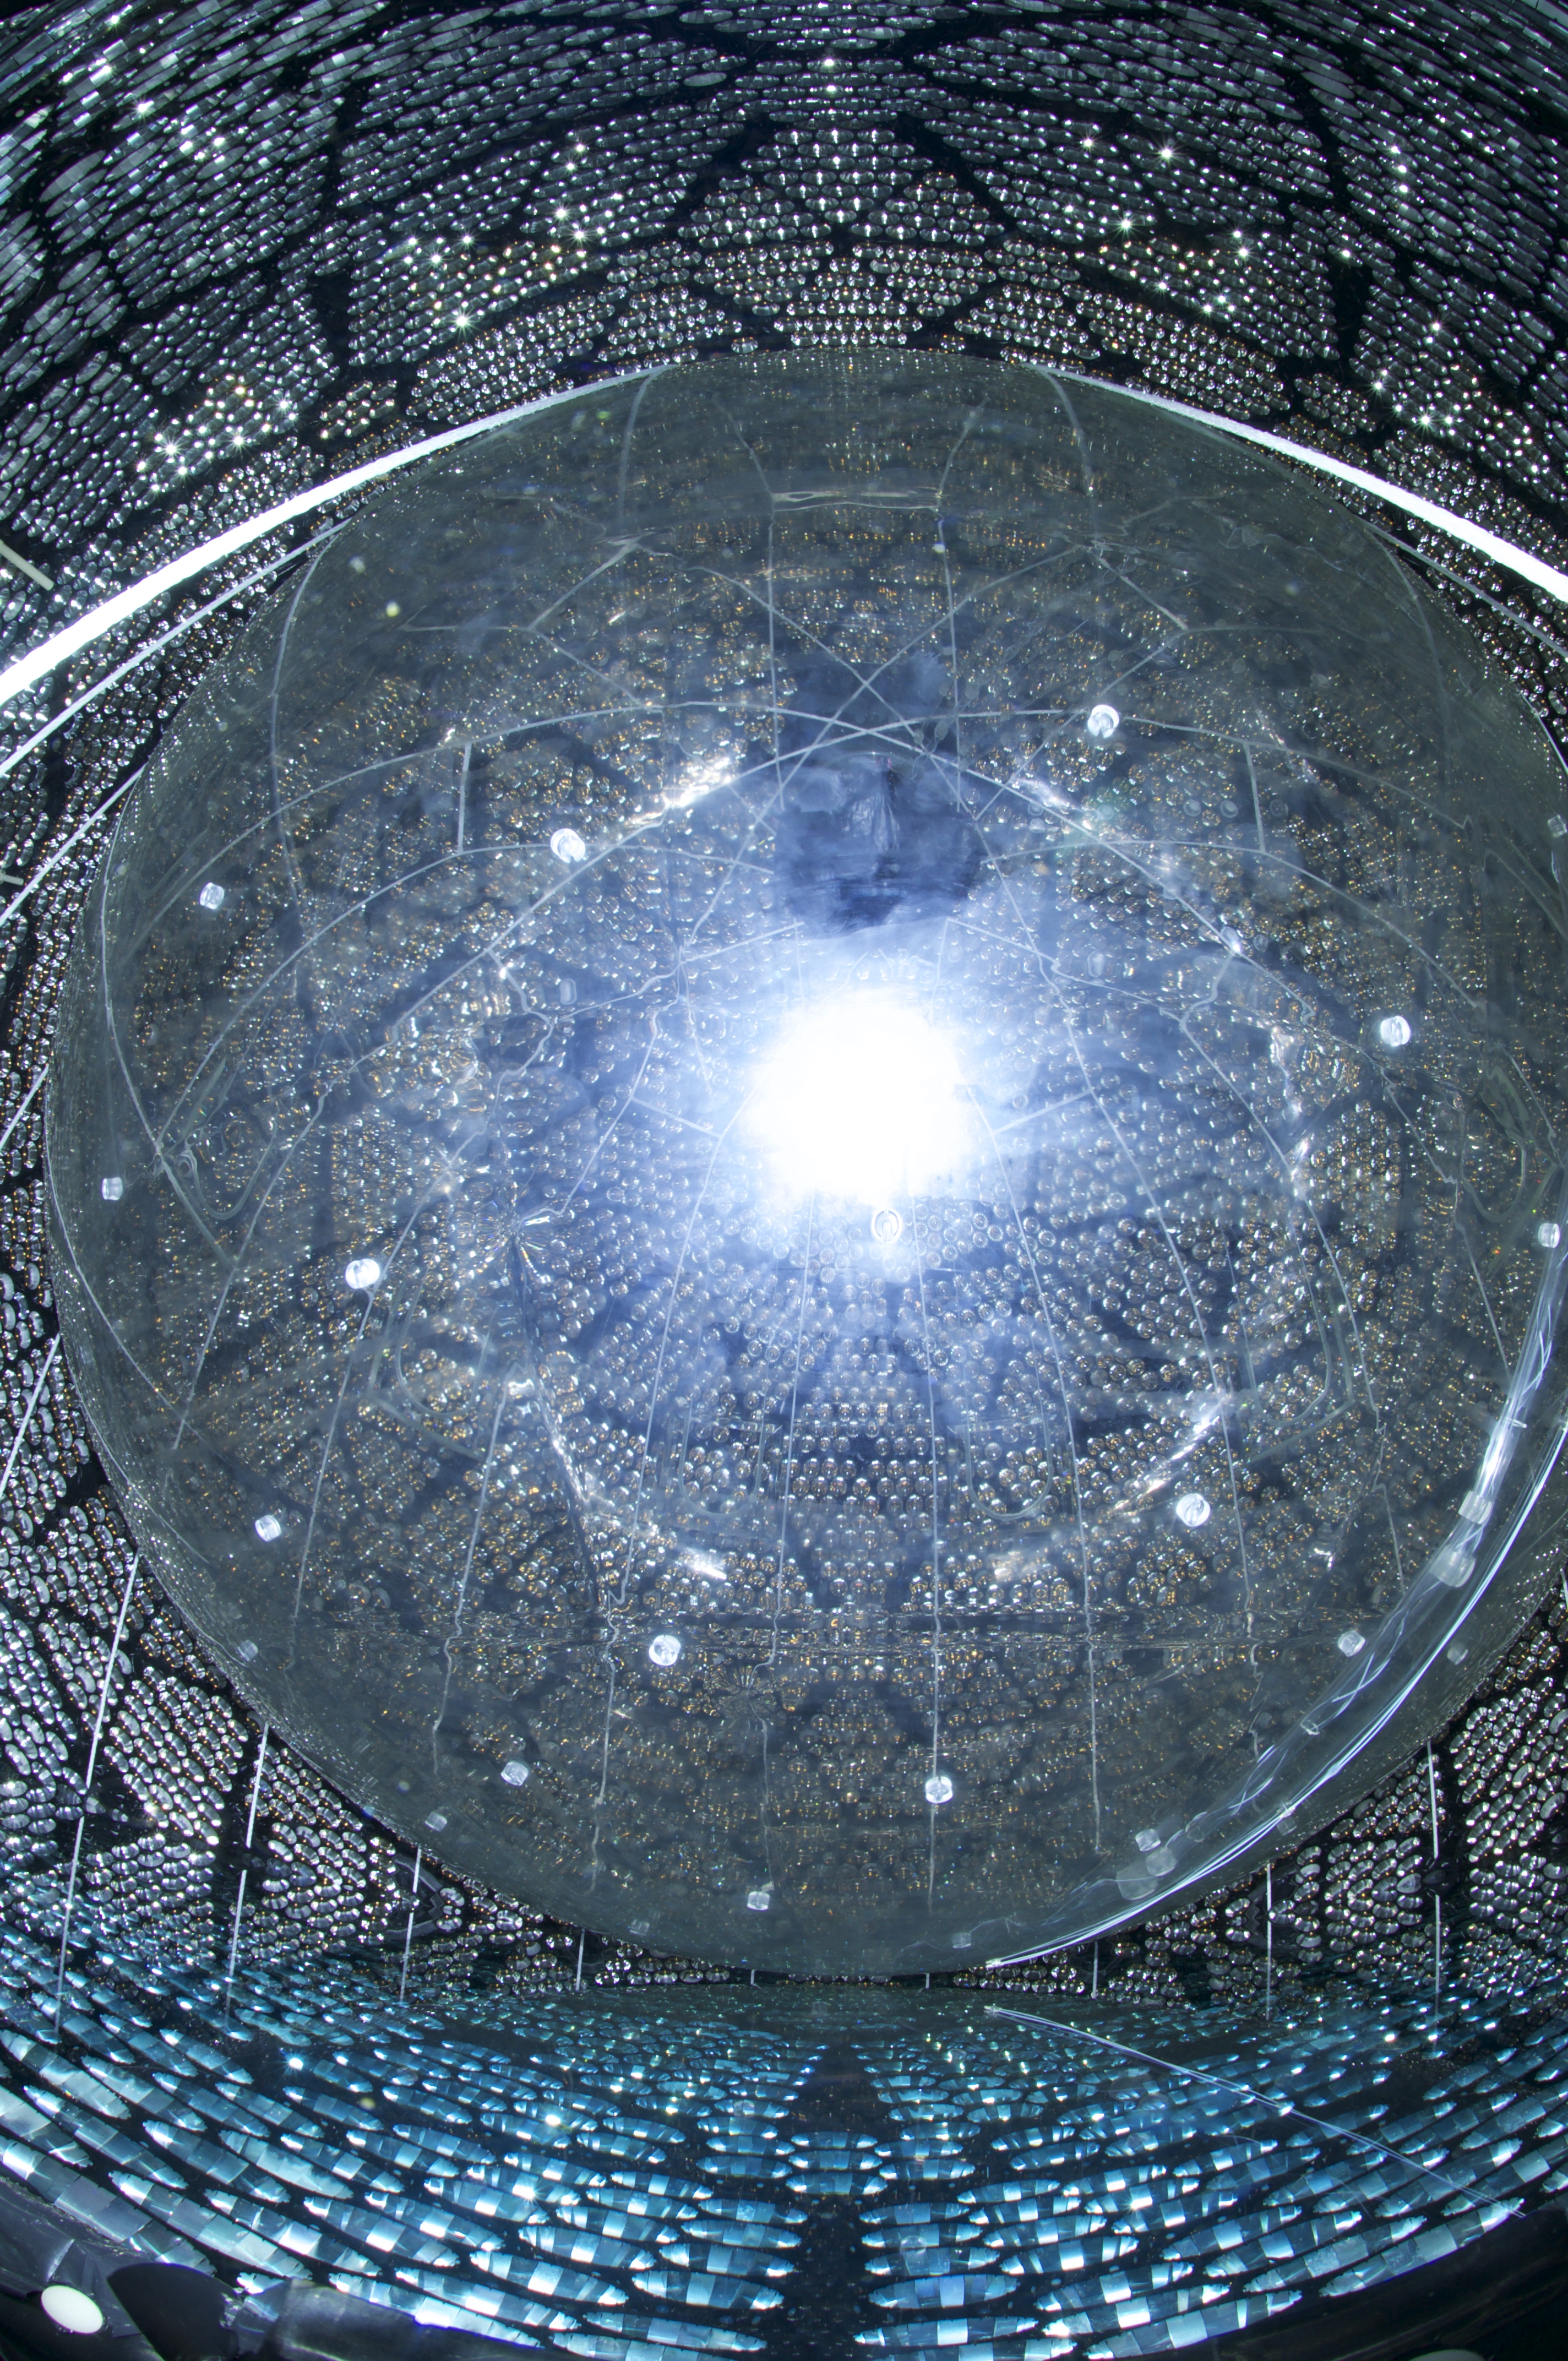 Oxford physicists share in Breakthrough Prize for seminal neutrino work